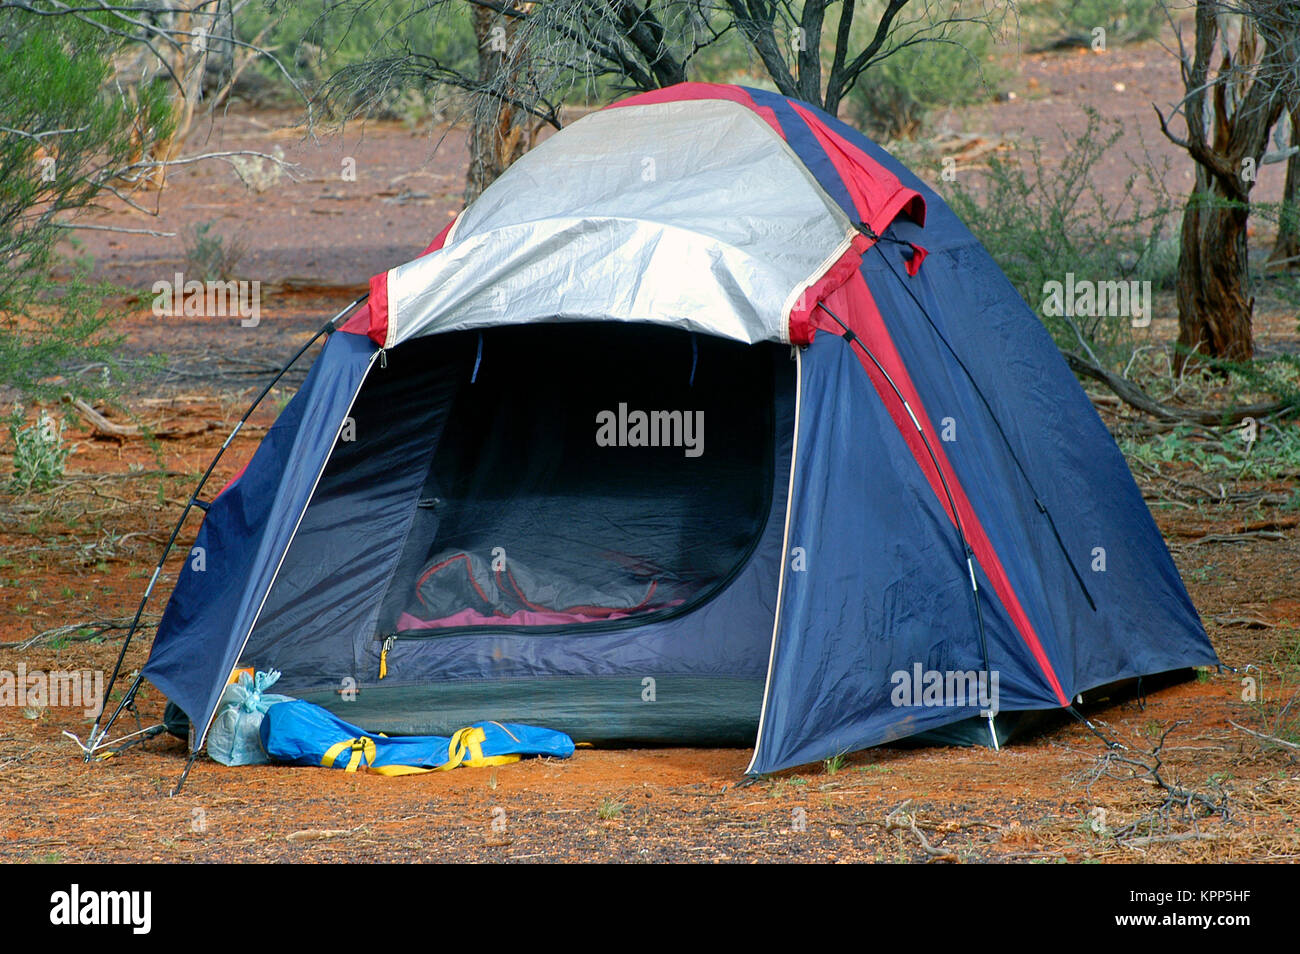 wilderness camping in the Australian desert Stock Photo